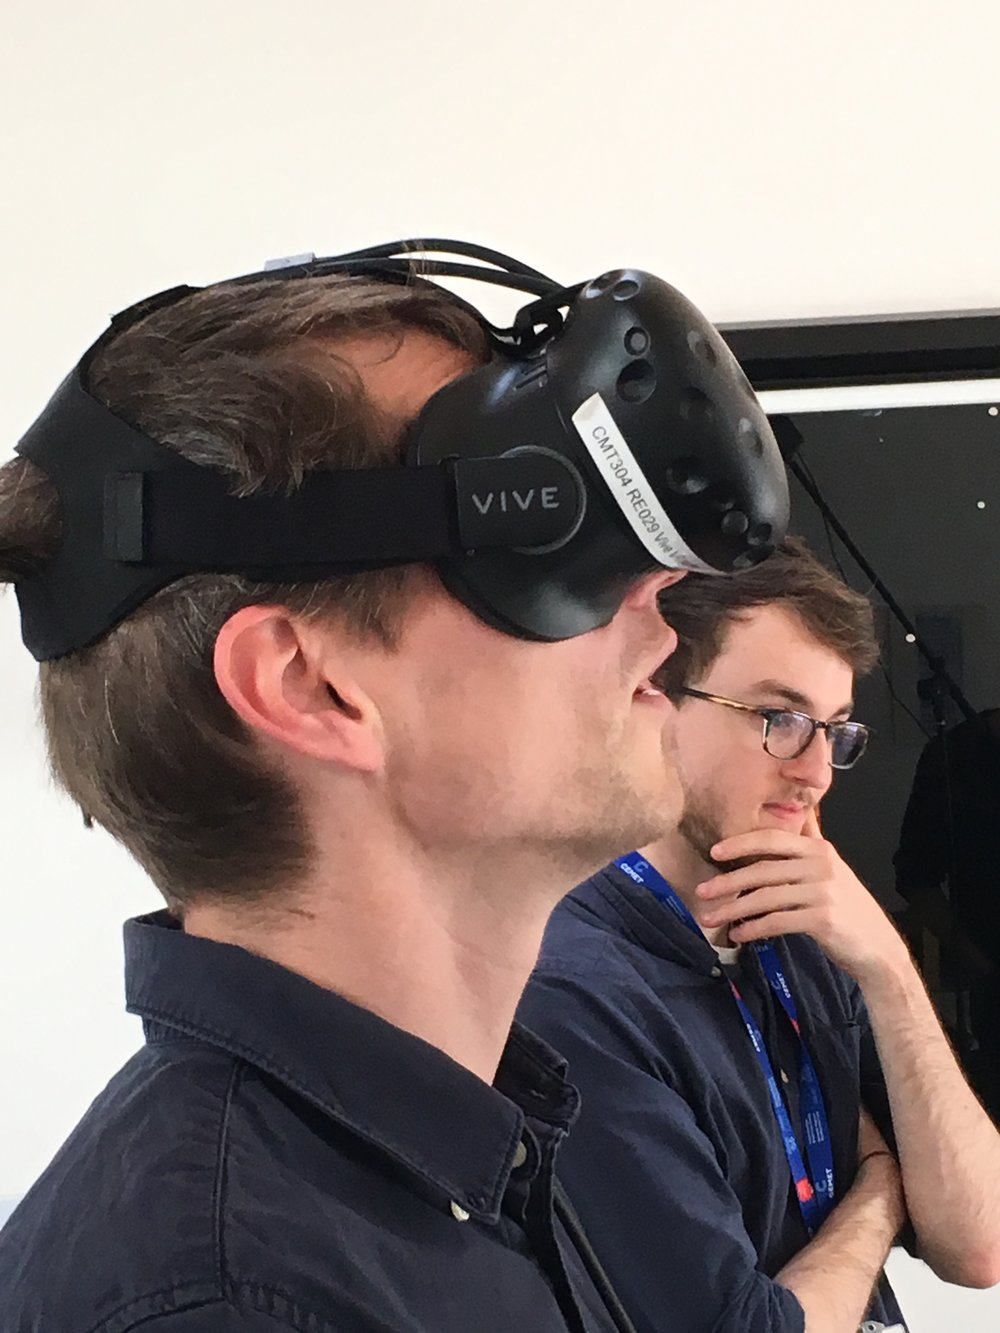 Billy going VR